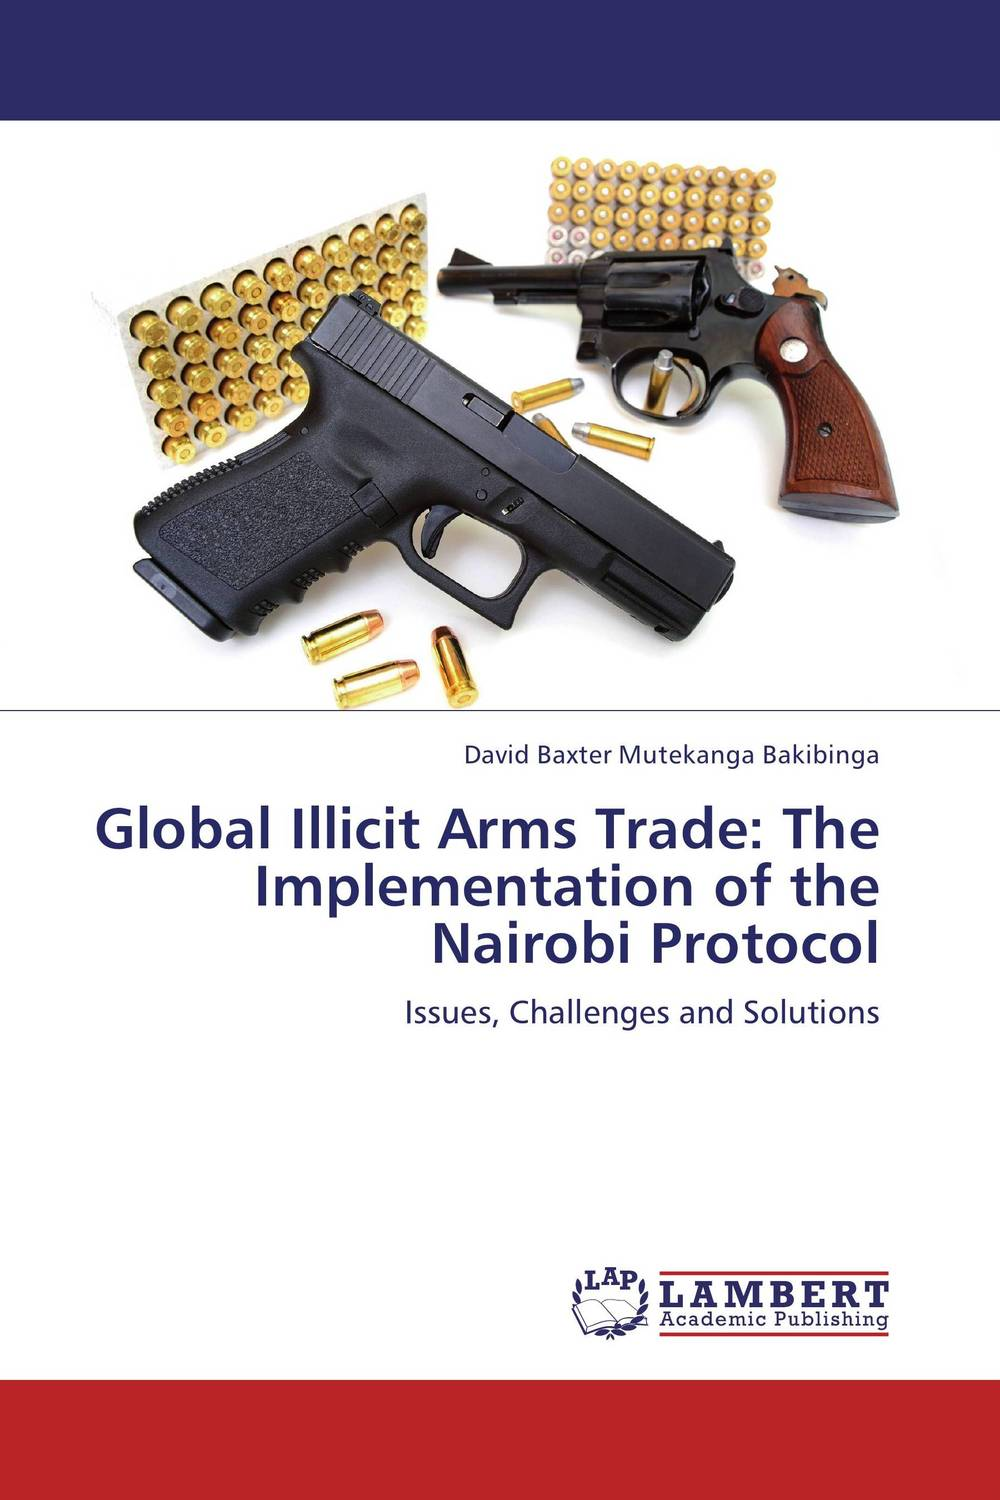 Global Illicit Arms Trade: The Implementation of the Nairobi Protocol maggie robinson in the arms of the heiress